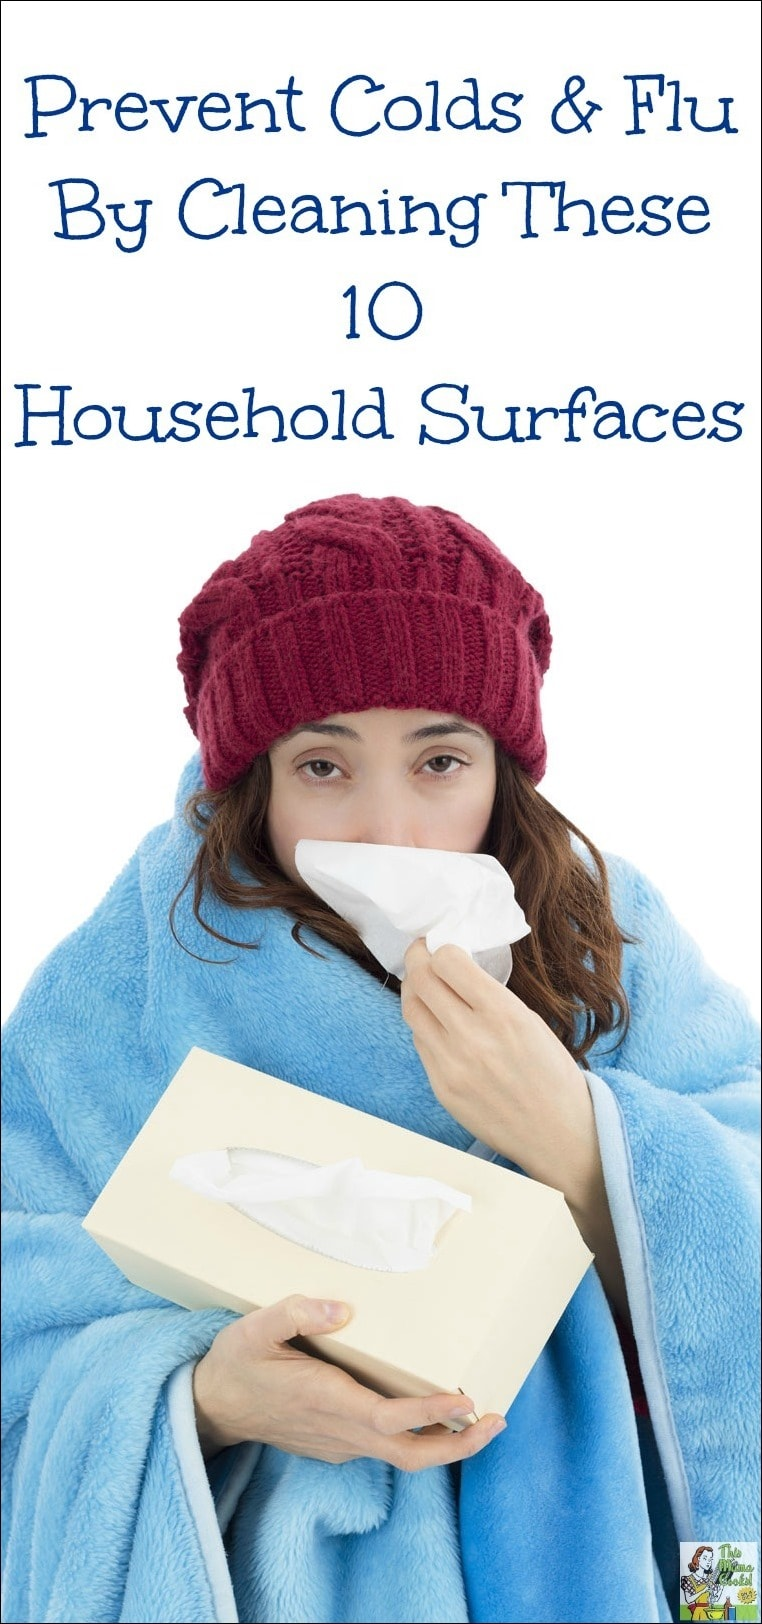 Want to know how you can help your family prevent getting colds and flu this winter. Just cleaning these 10 shared household surfaces with antibacterial wipes. Here's a list of those surfaces including some you probably never thought of! You'll have a healthier and happier family this cold and flu season!